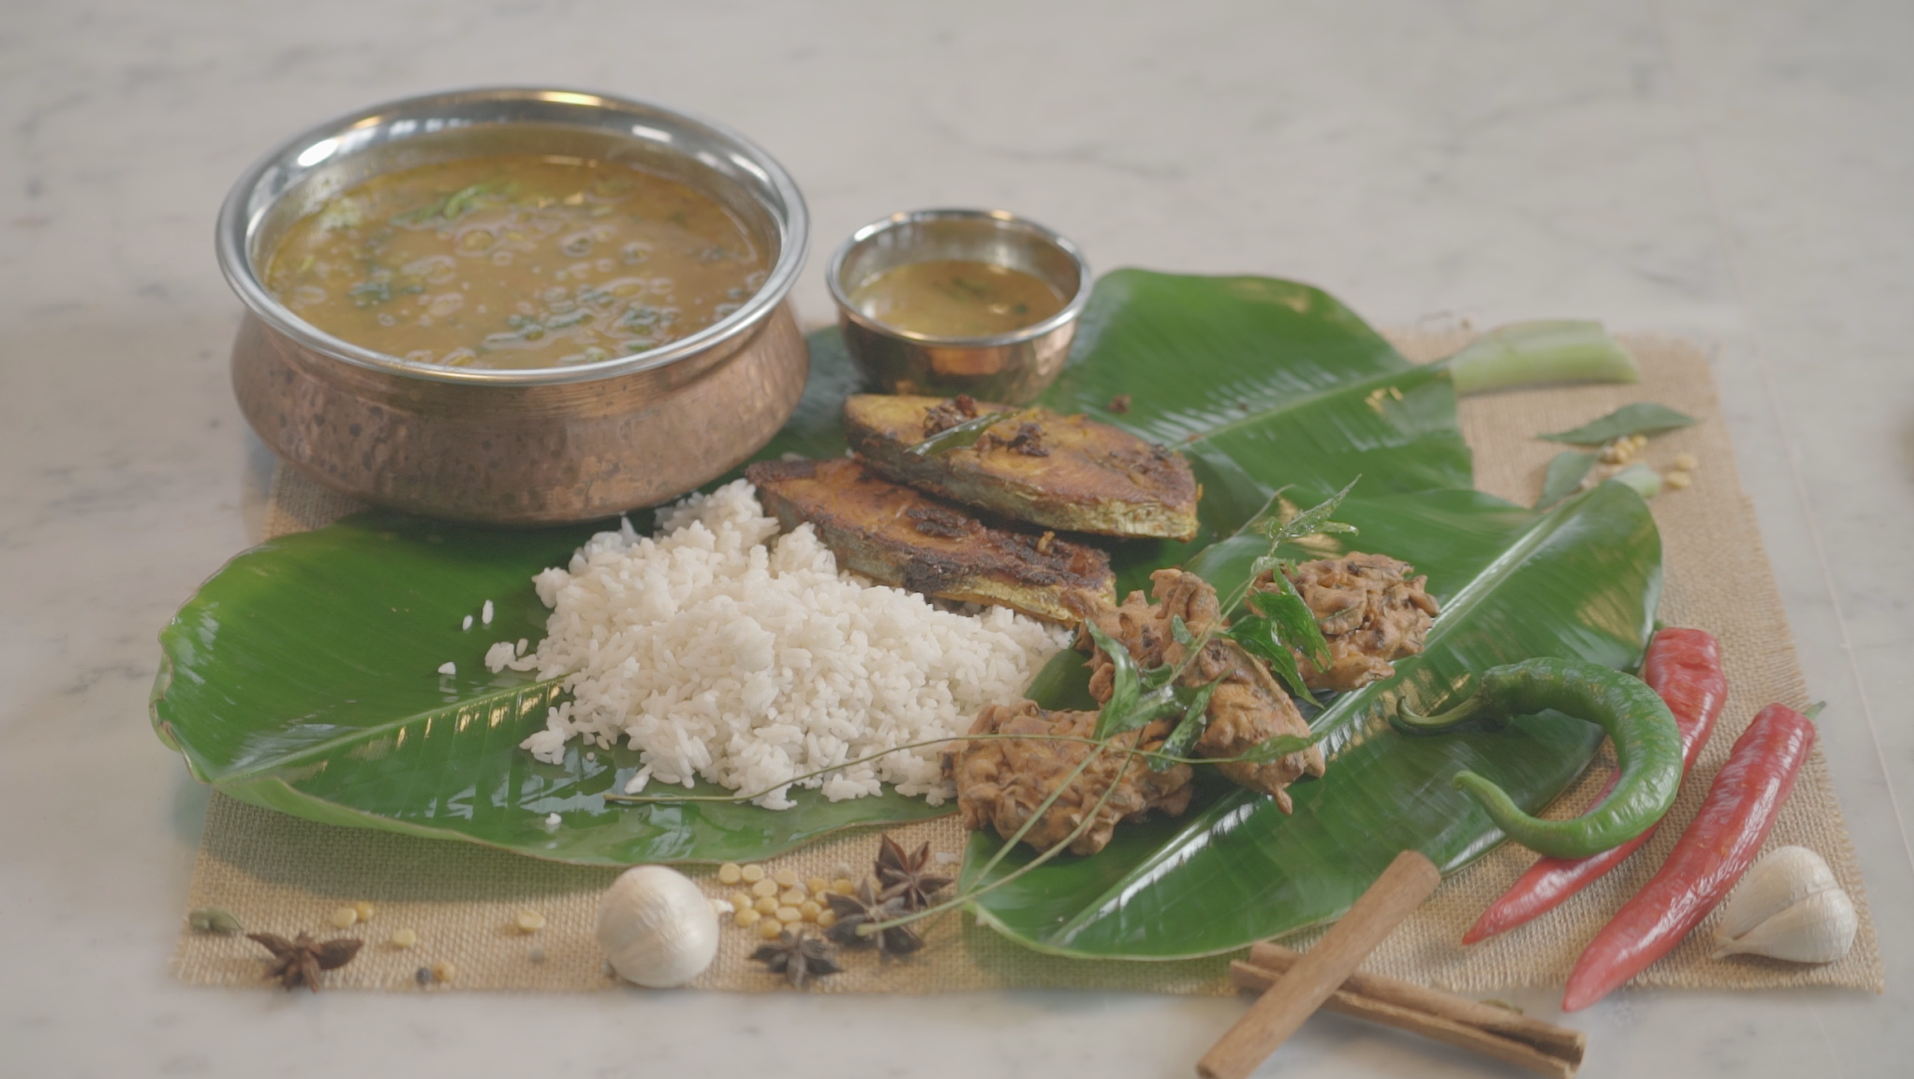 Ayurveda is a centuries-old Hindu system of medicine and nutrition that is often described as the 'mother of all healing.' Photo courtesy: Singapore HeritageFest